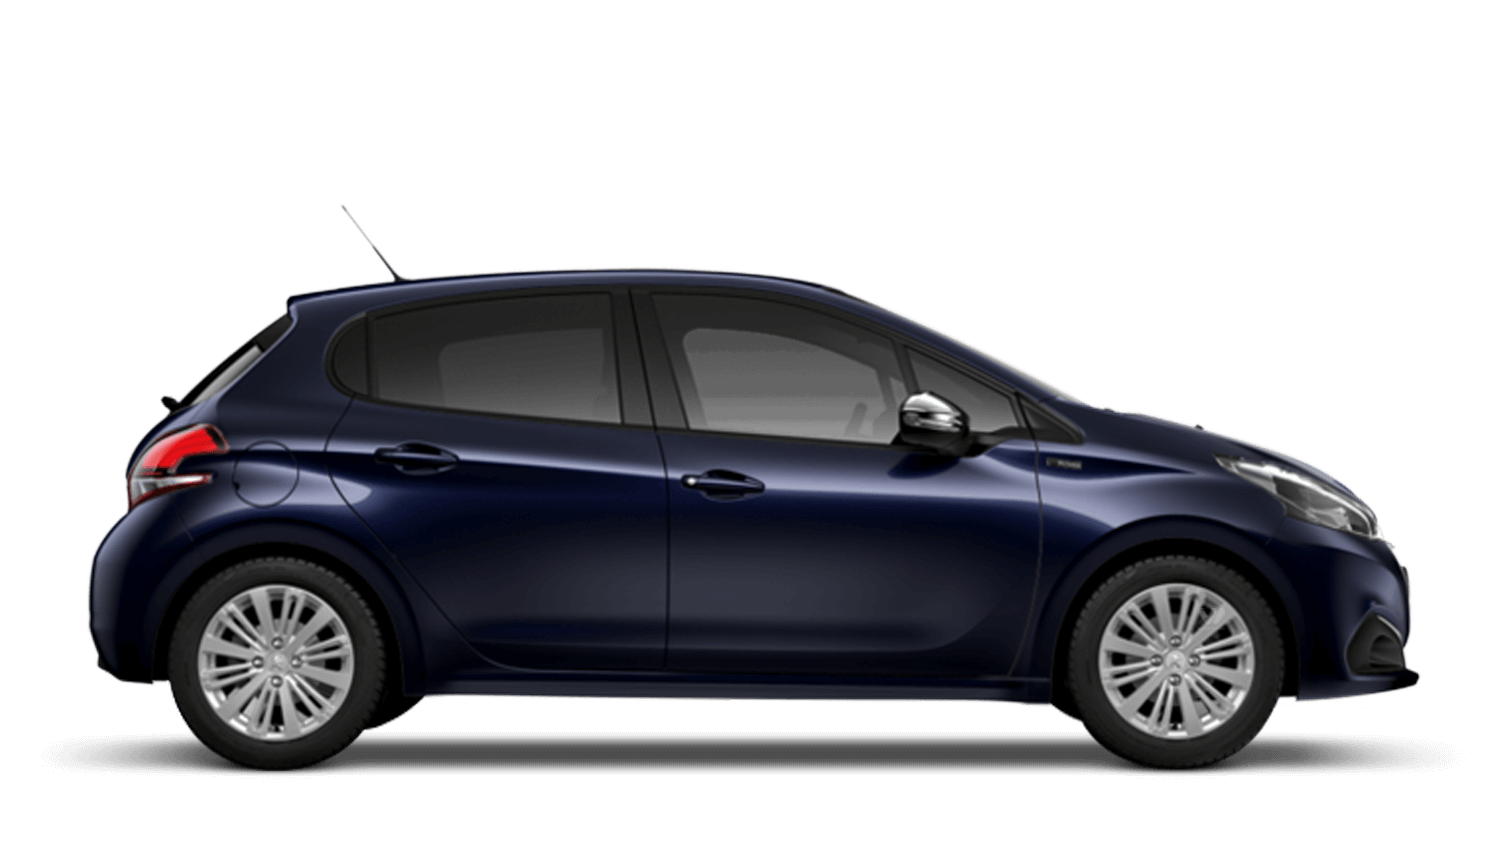 Twilight Blue Peugeot 208